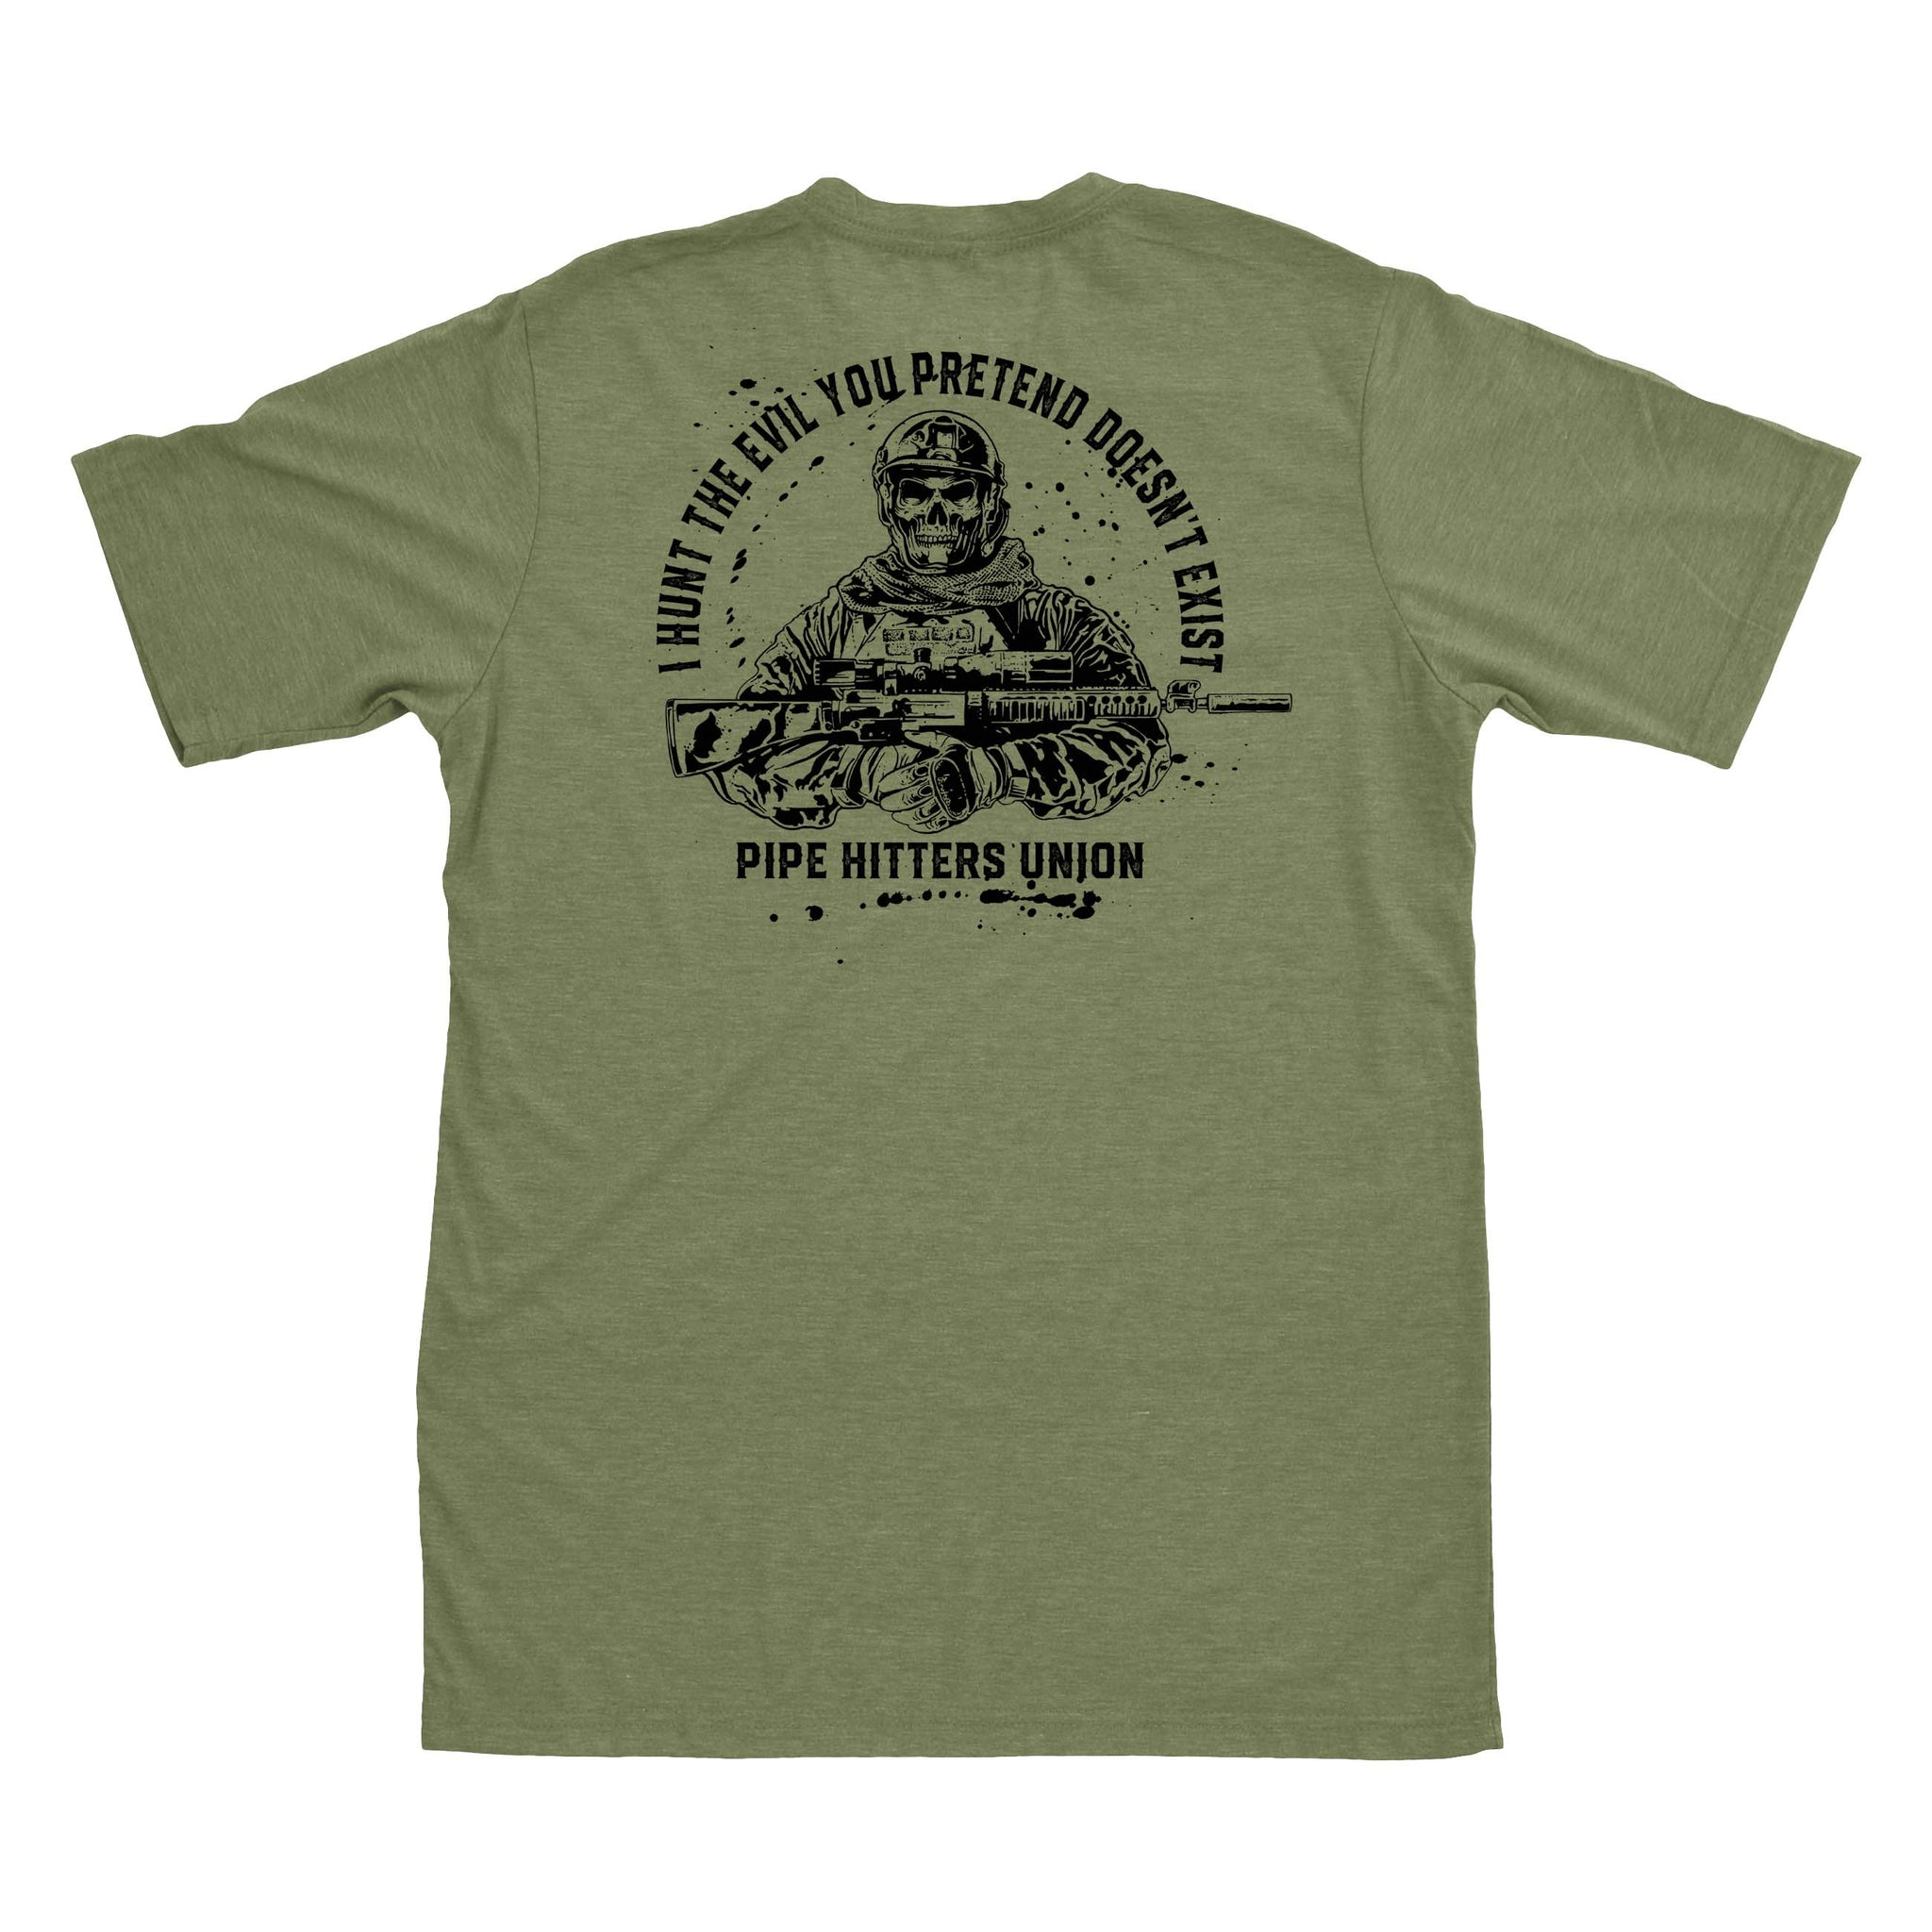 Hunt Evil - Military Green - T-Shirts - Pipe Hitters Union